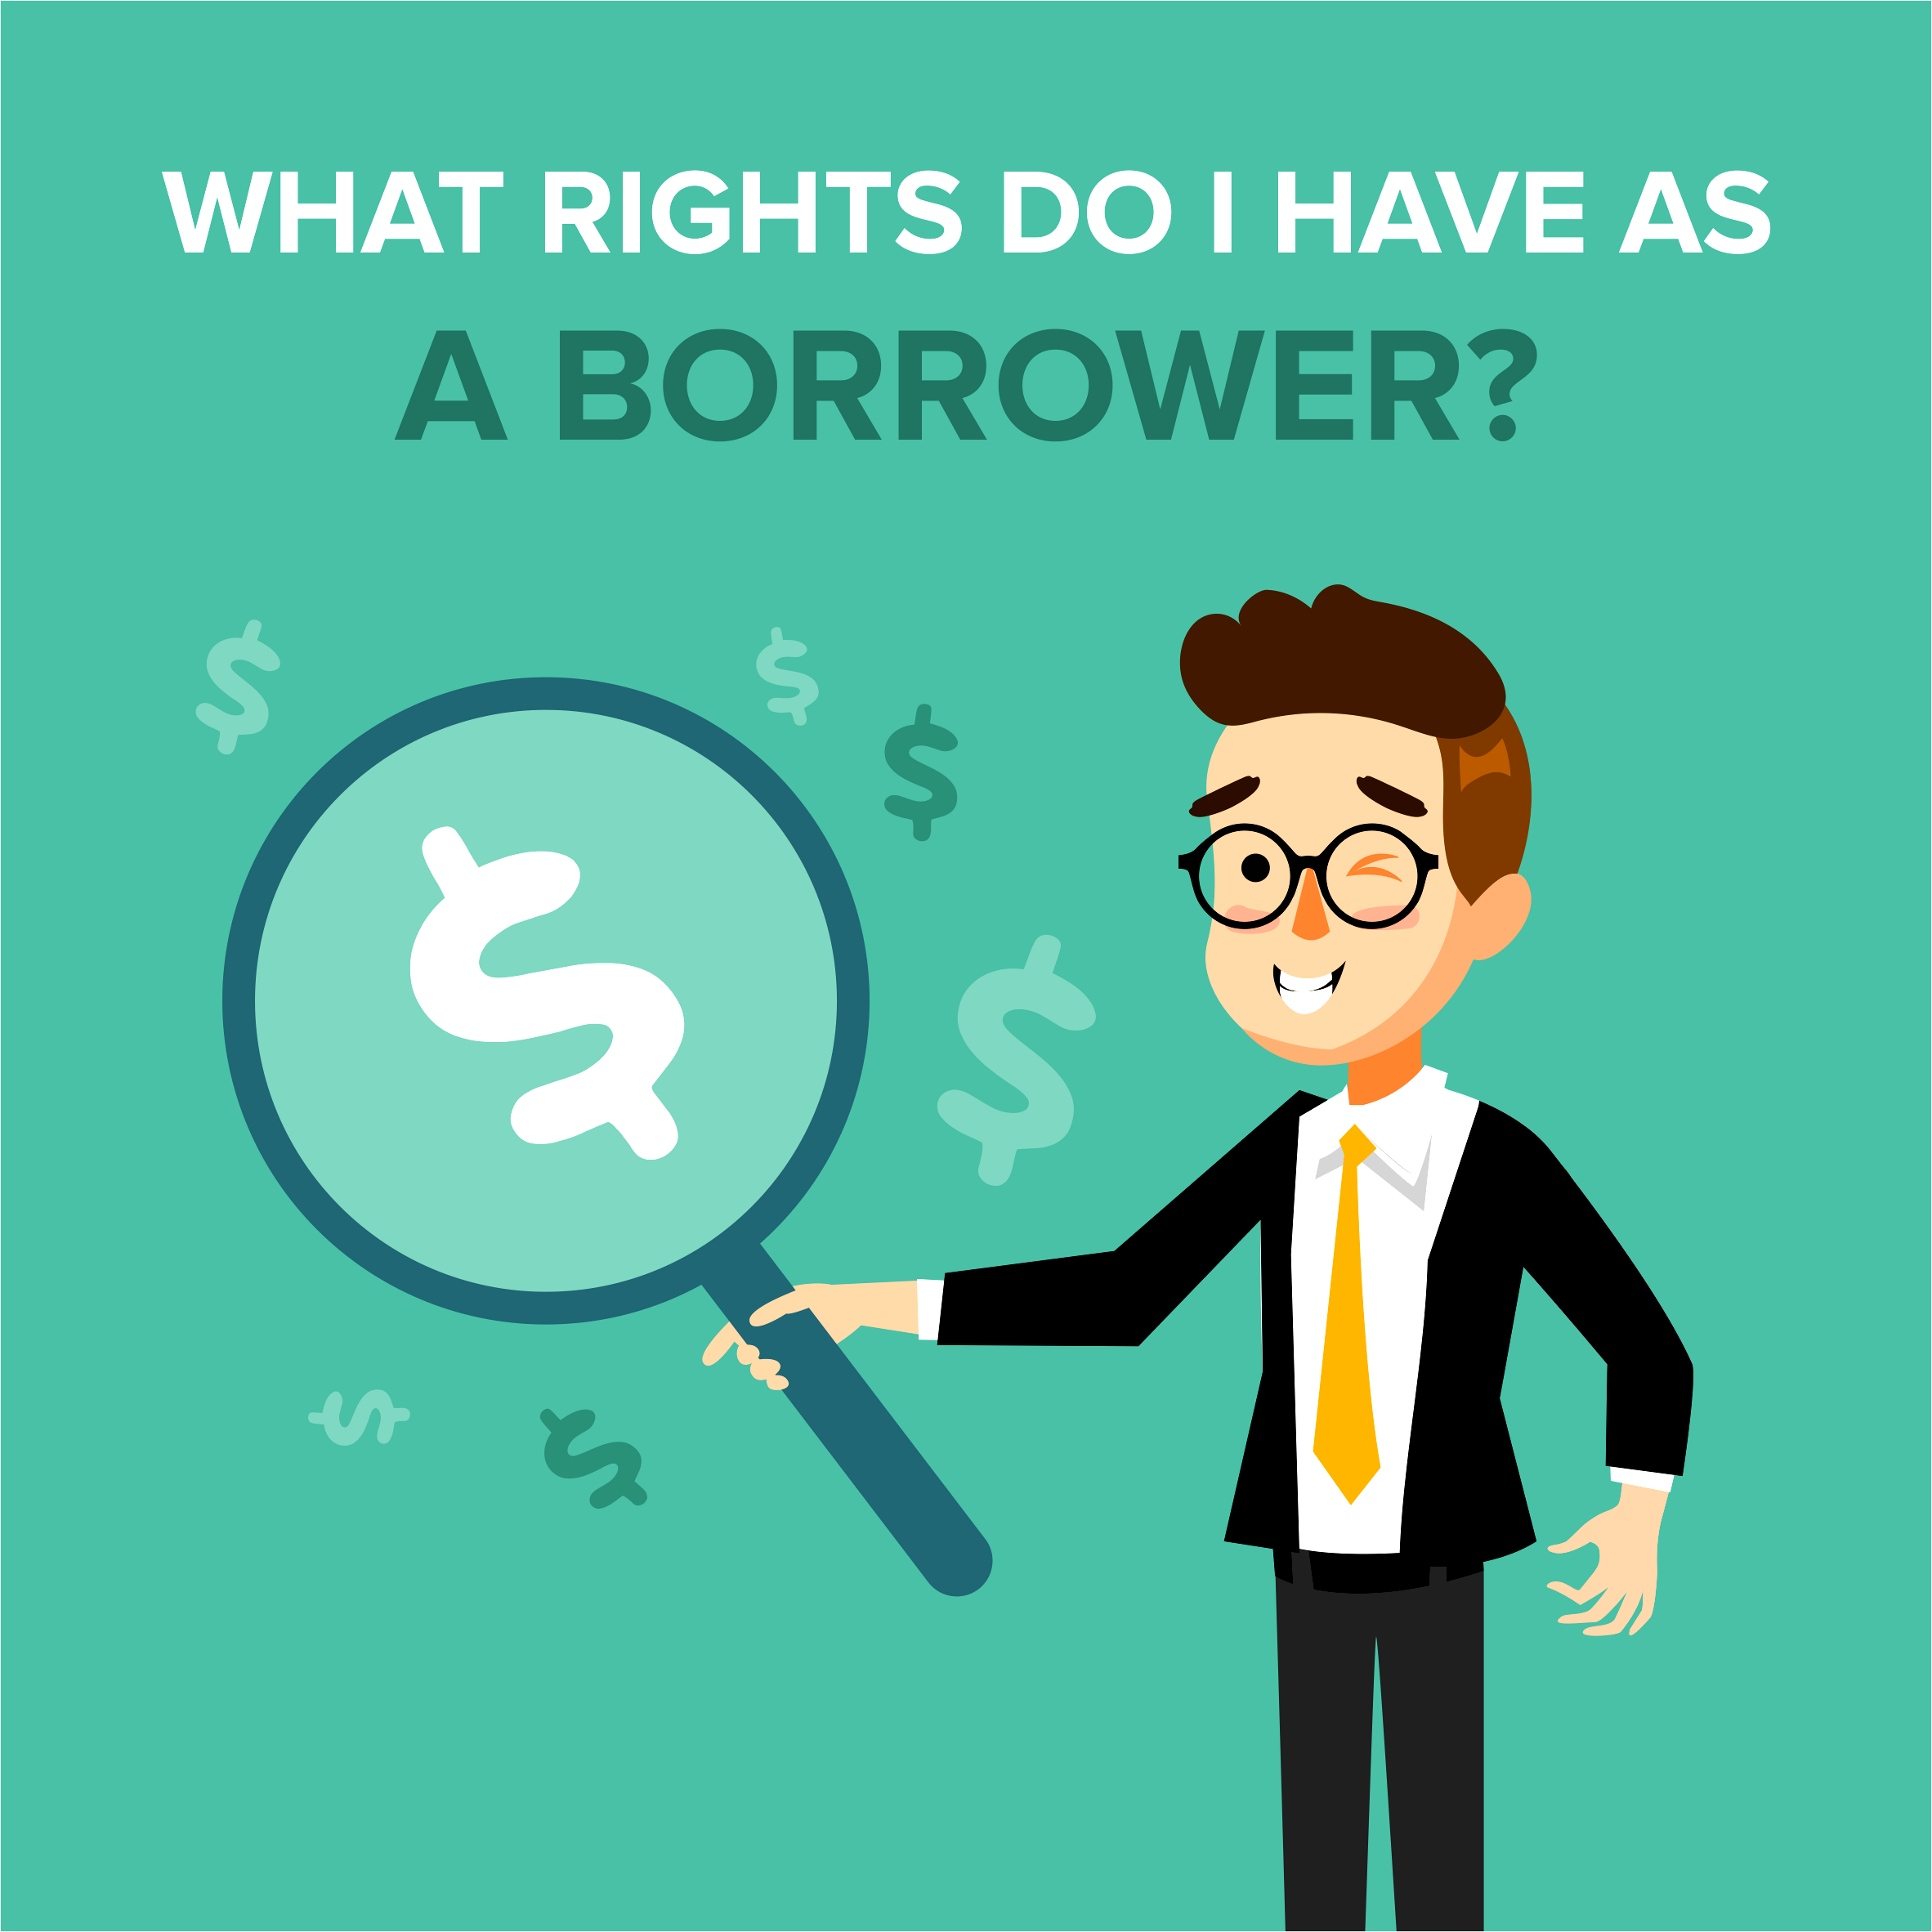 What Rights do I Have as a Borrower?